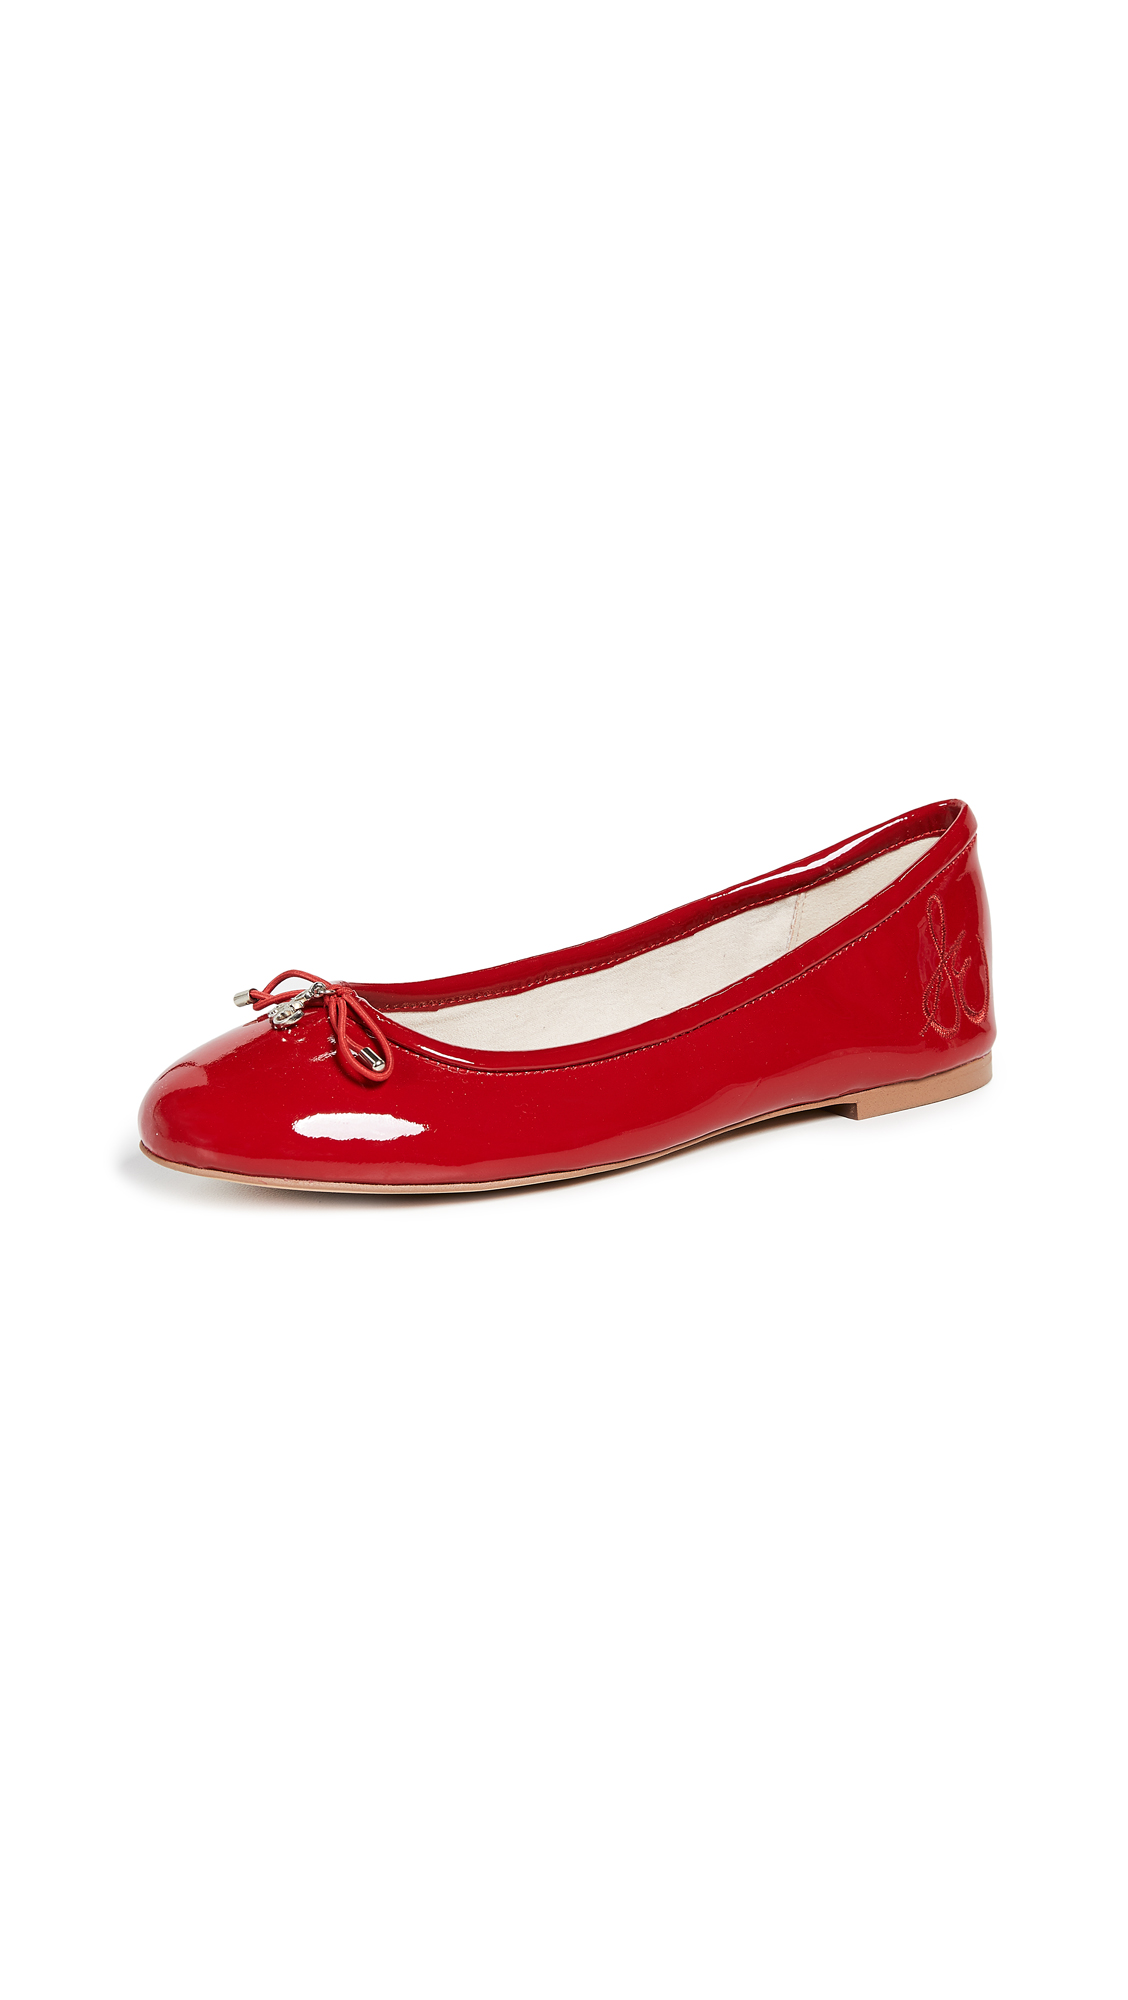 Sam Edelman Felicia Ballet Flats - True Red